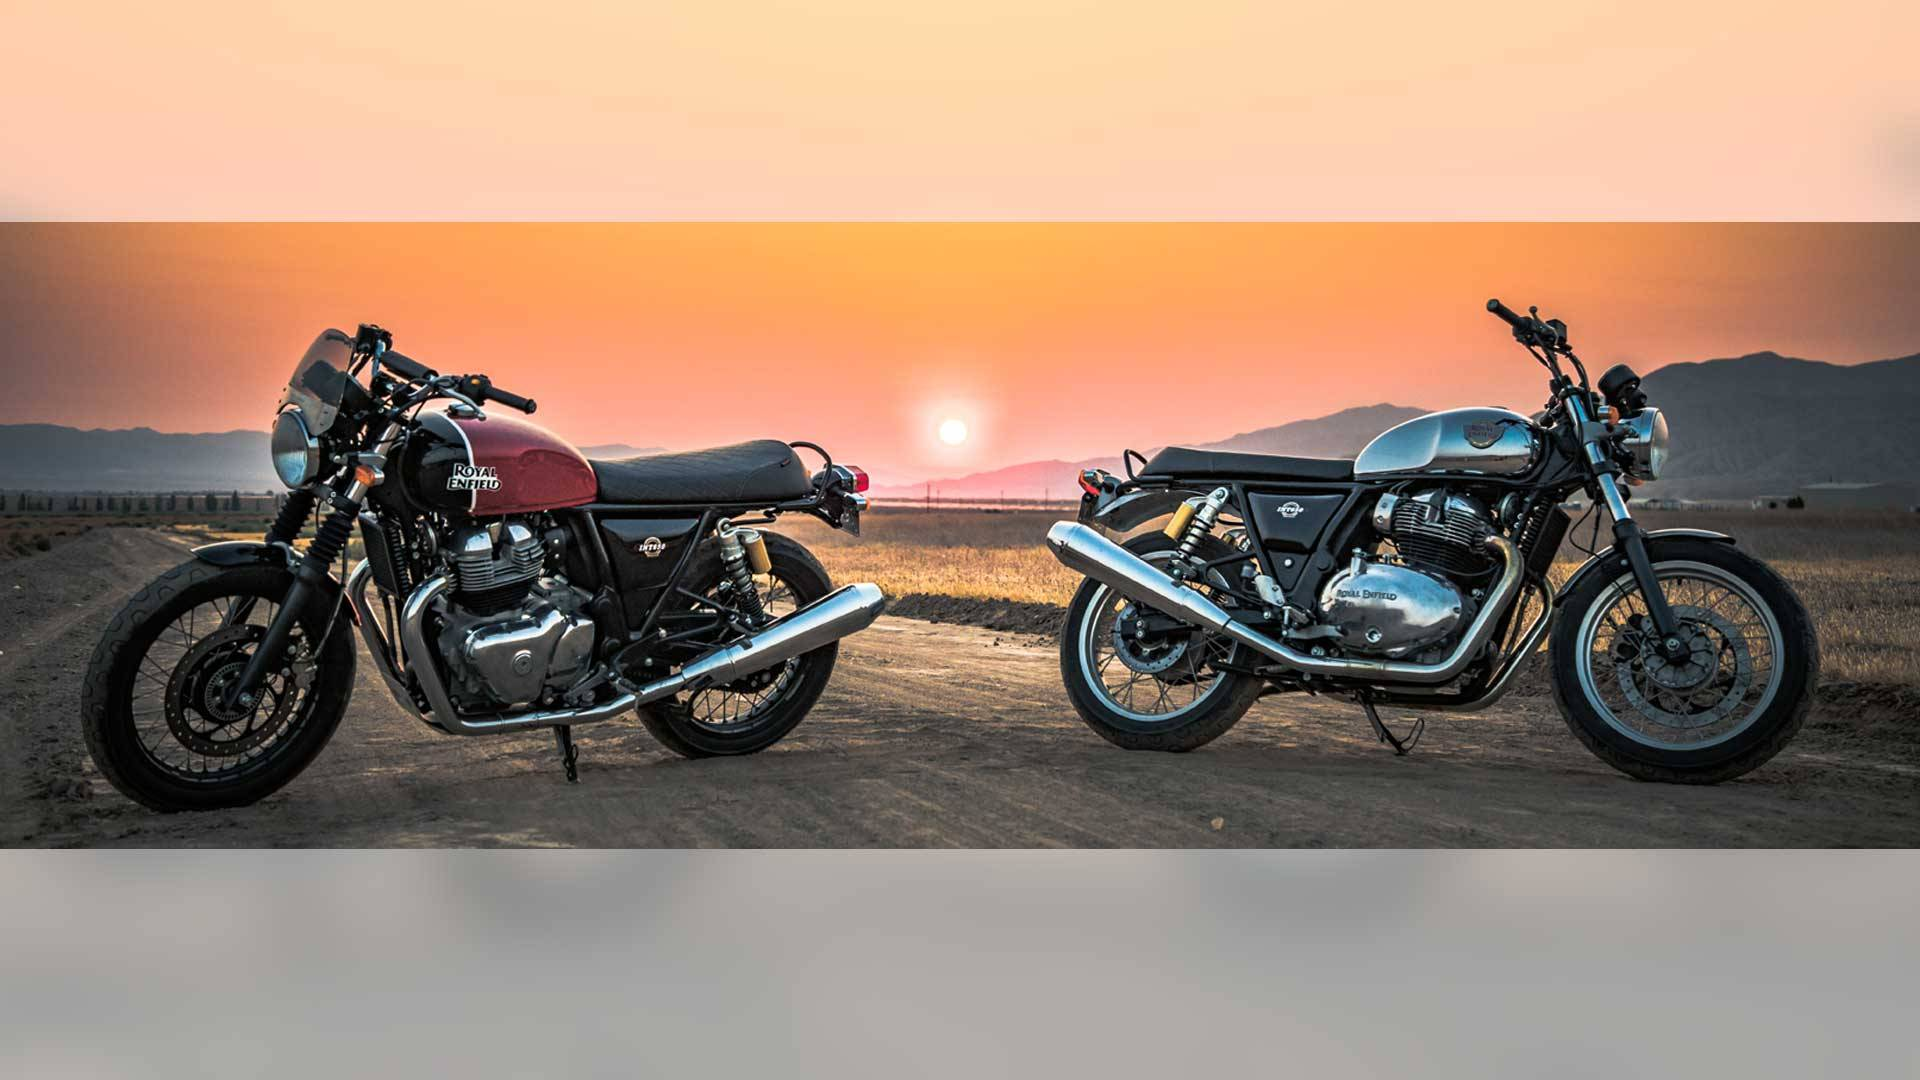 2019 Royal Enfield Int650 And Continental Gt Everything We Know